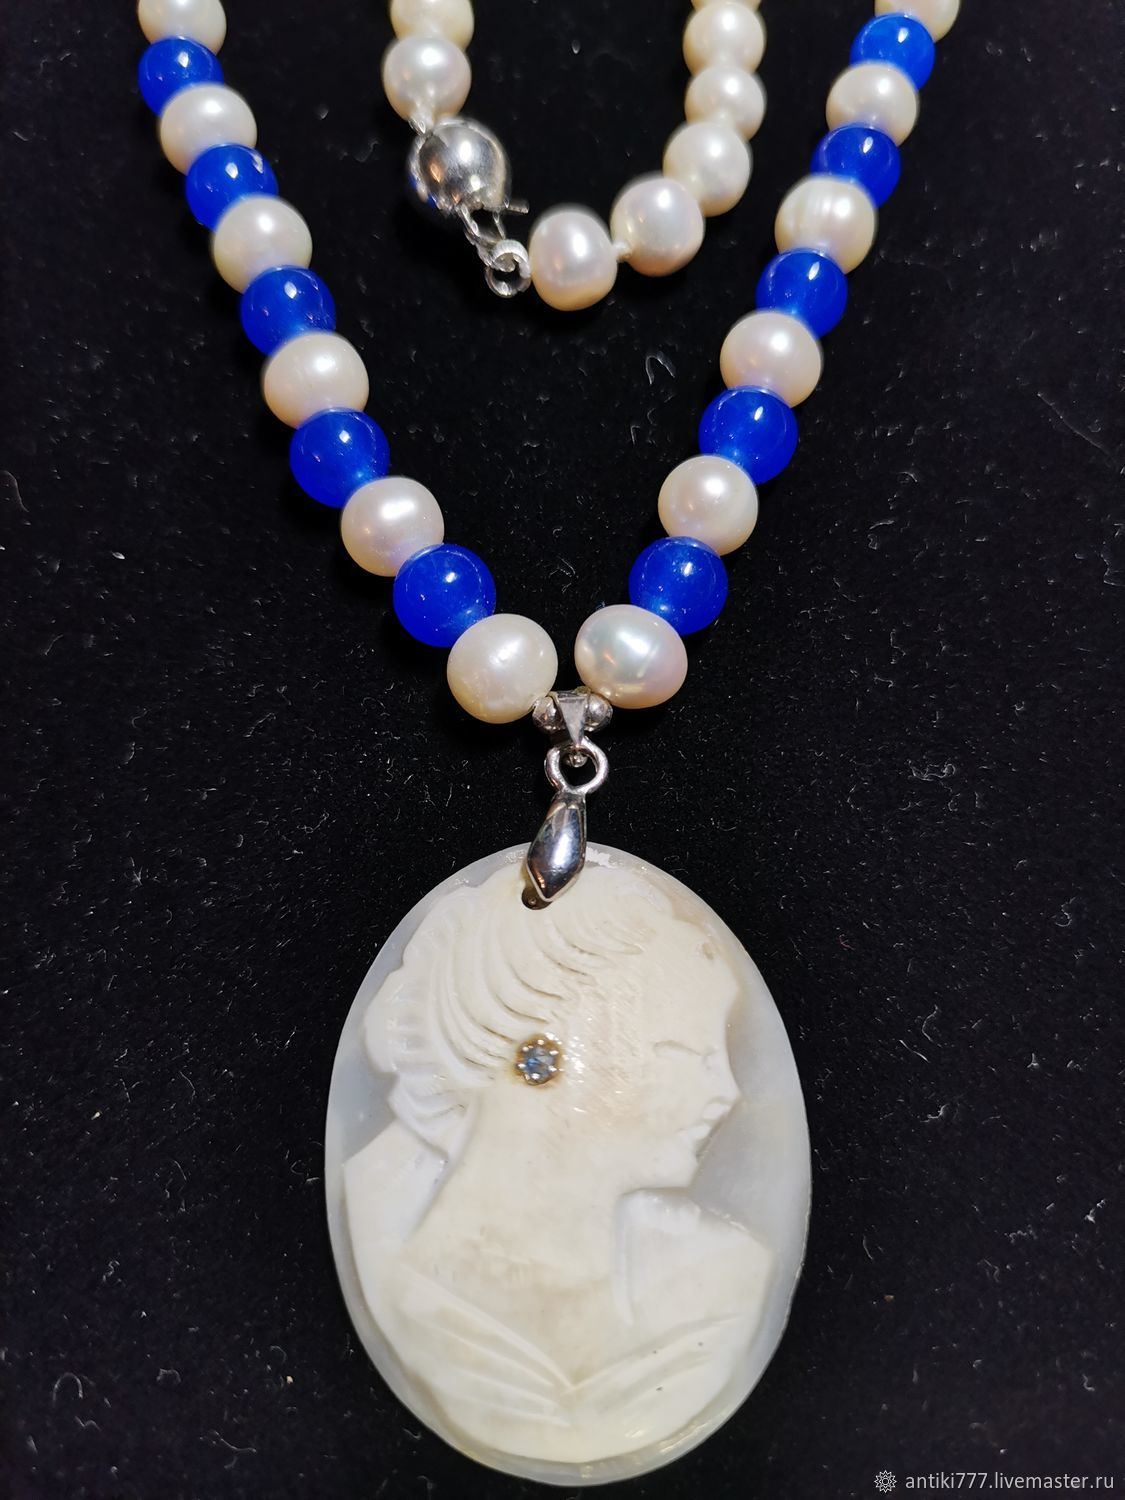 Pearl necklace with a cameo on the shell and a miniature sapphire, Vintage necklace, Moscow,  Фото №1